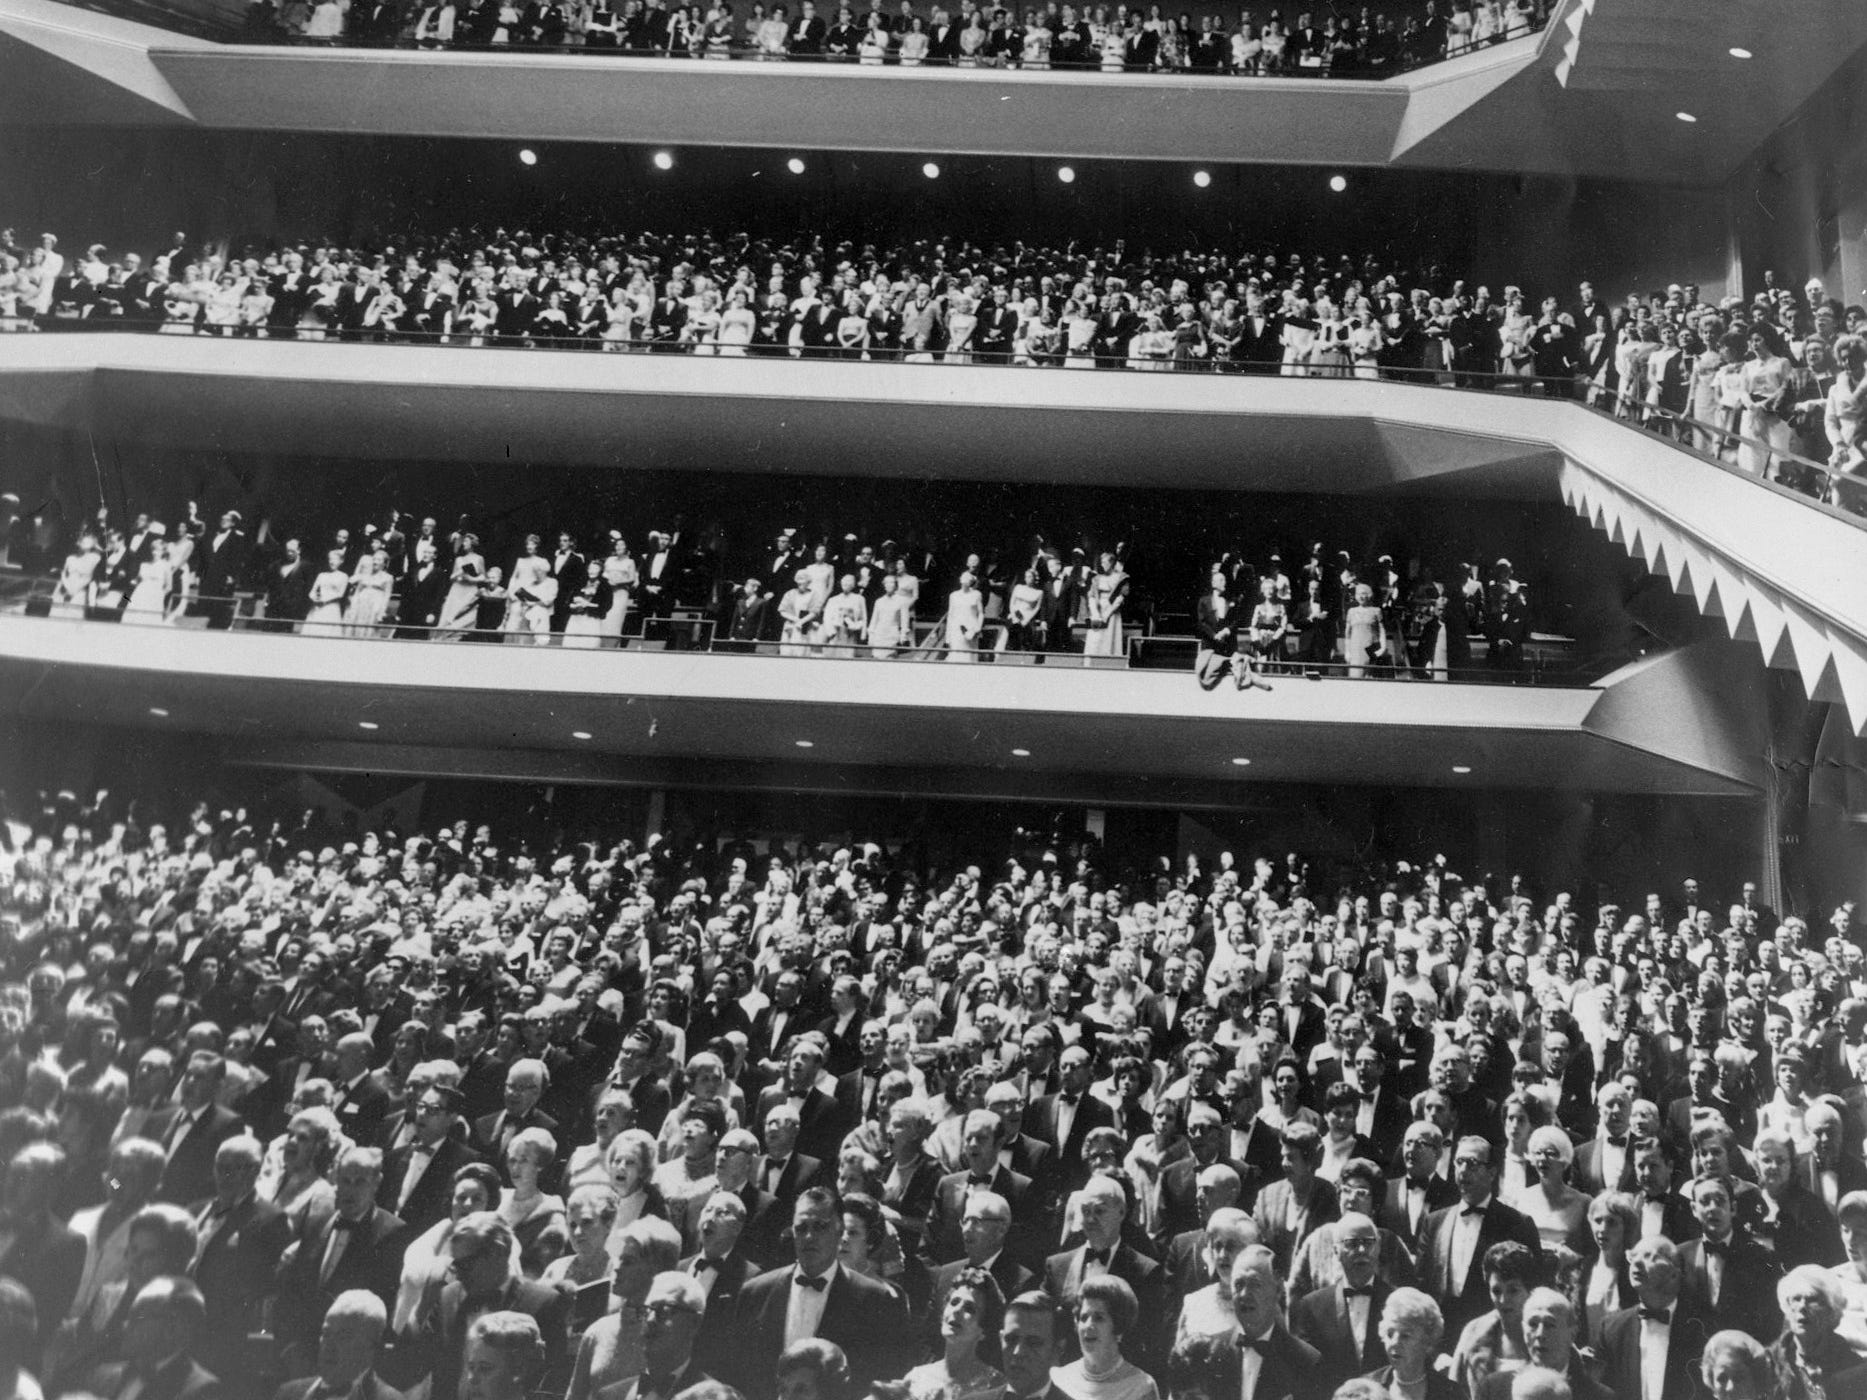 """Copy of a photo of a performance at the Performing Arts Center. This photo was in the Sept. 18 edition of the Sentinel with the caption """"Milwaukee's dignitaries stood as the Milwaukee symphony orchestra, led by Kenneth Schermerhorn, played """"The Star Spangled Banner"""" during the grand opening of the Performing Arts Center. The first night audience filled Uihlein hall to near capacity Wednesday night."""" Date is 9/18/1969. PAC transparency folder #690707"""